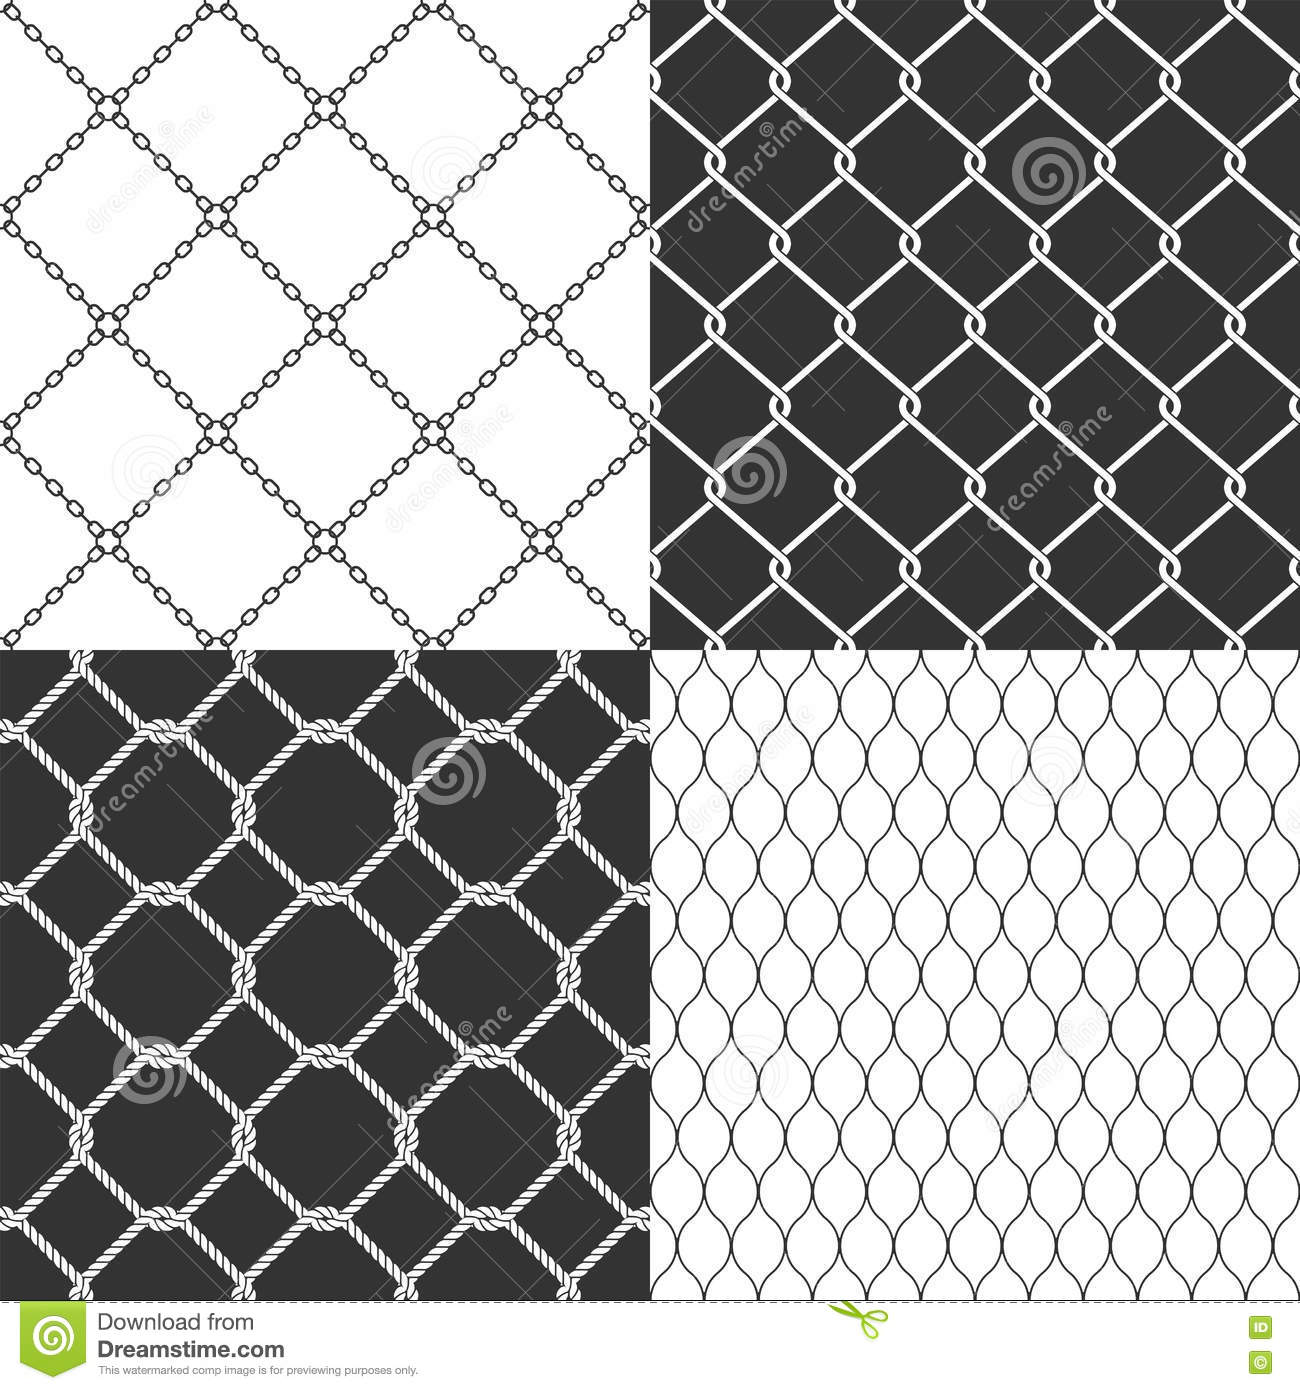 Wire Mesh. Seamless Vector Pattern. Stock Vector - Illustration of ...